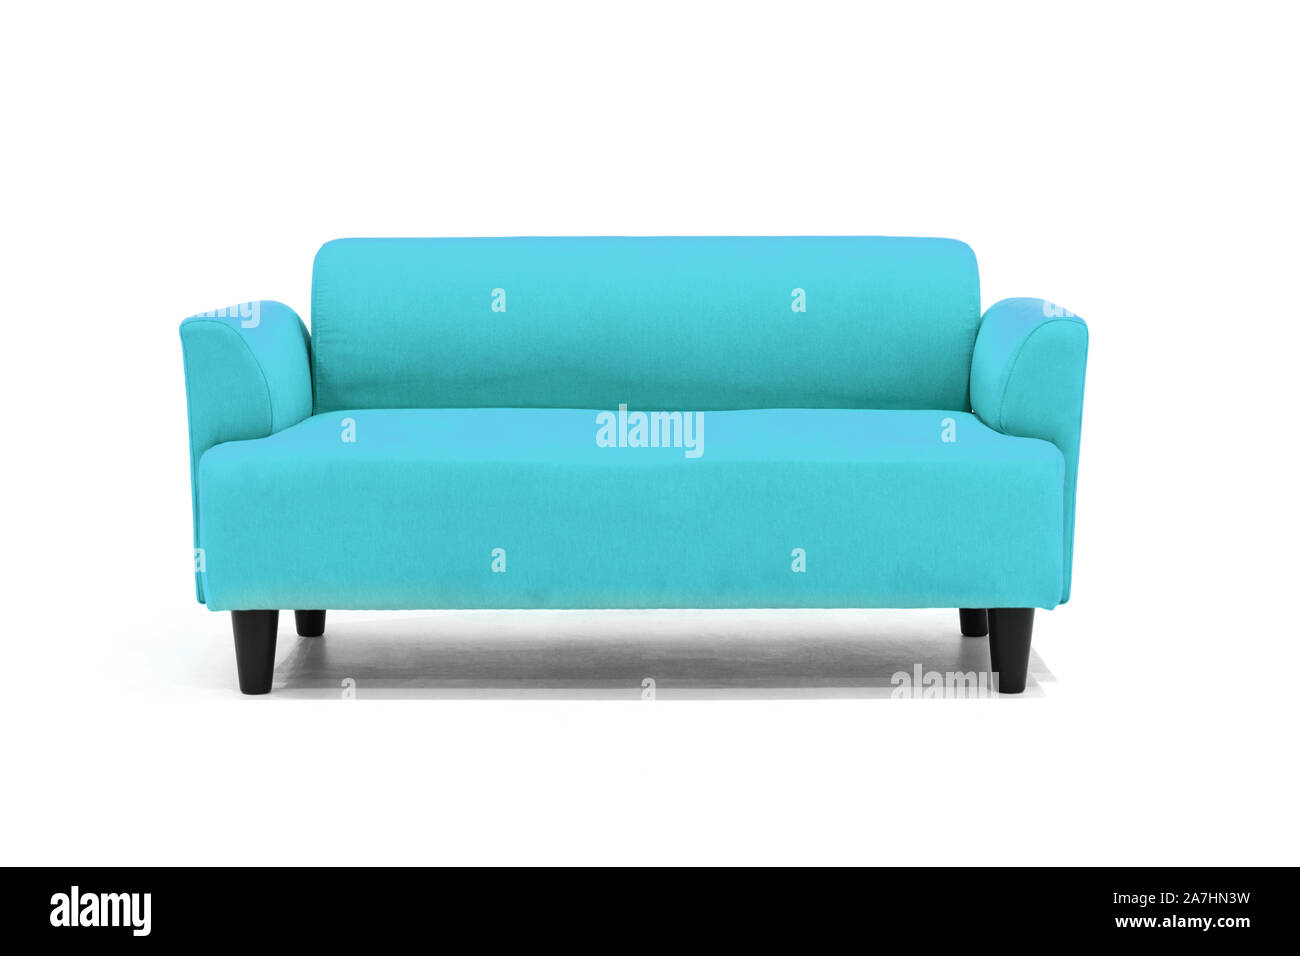 Light Blue Scandinavian Style Contemporary Sofa On White